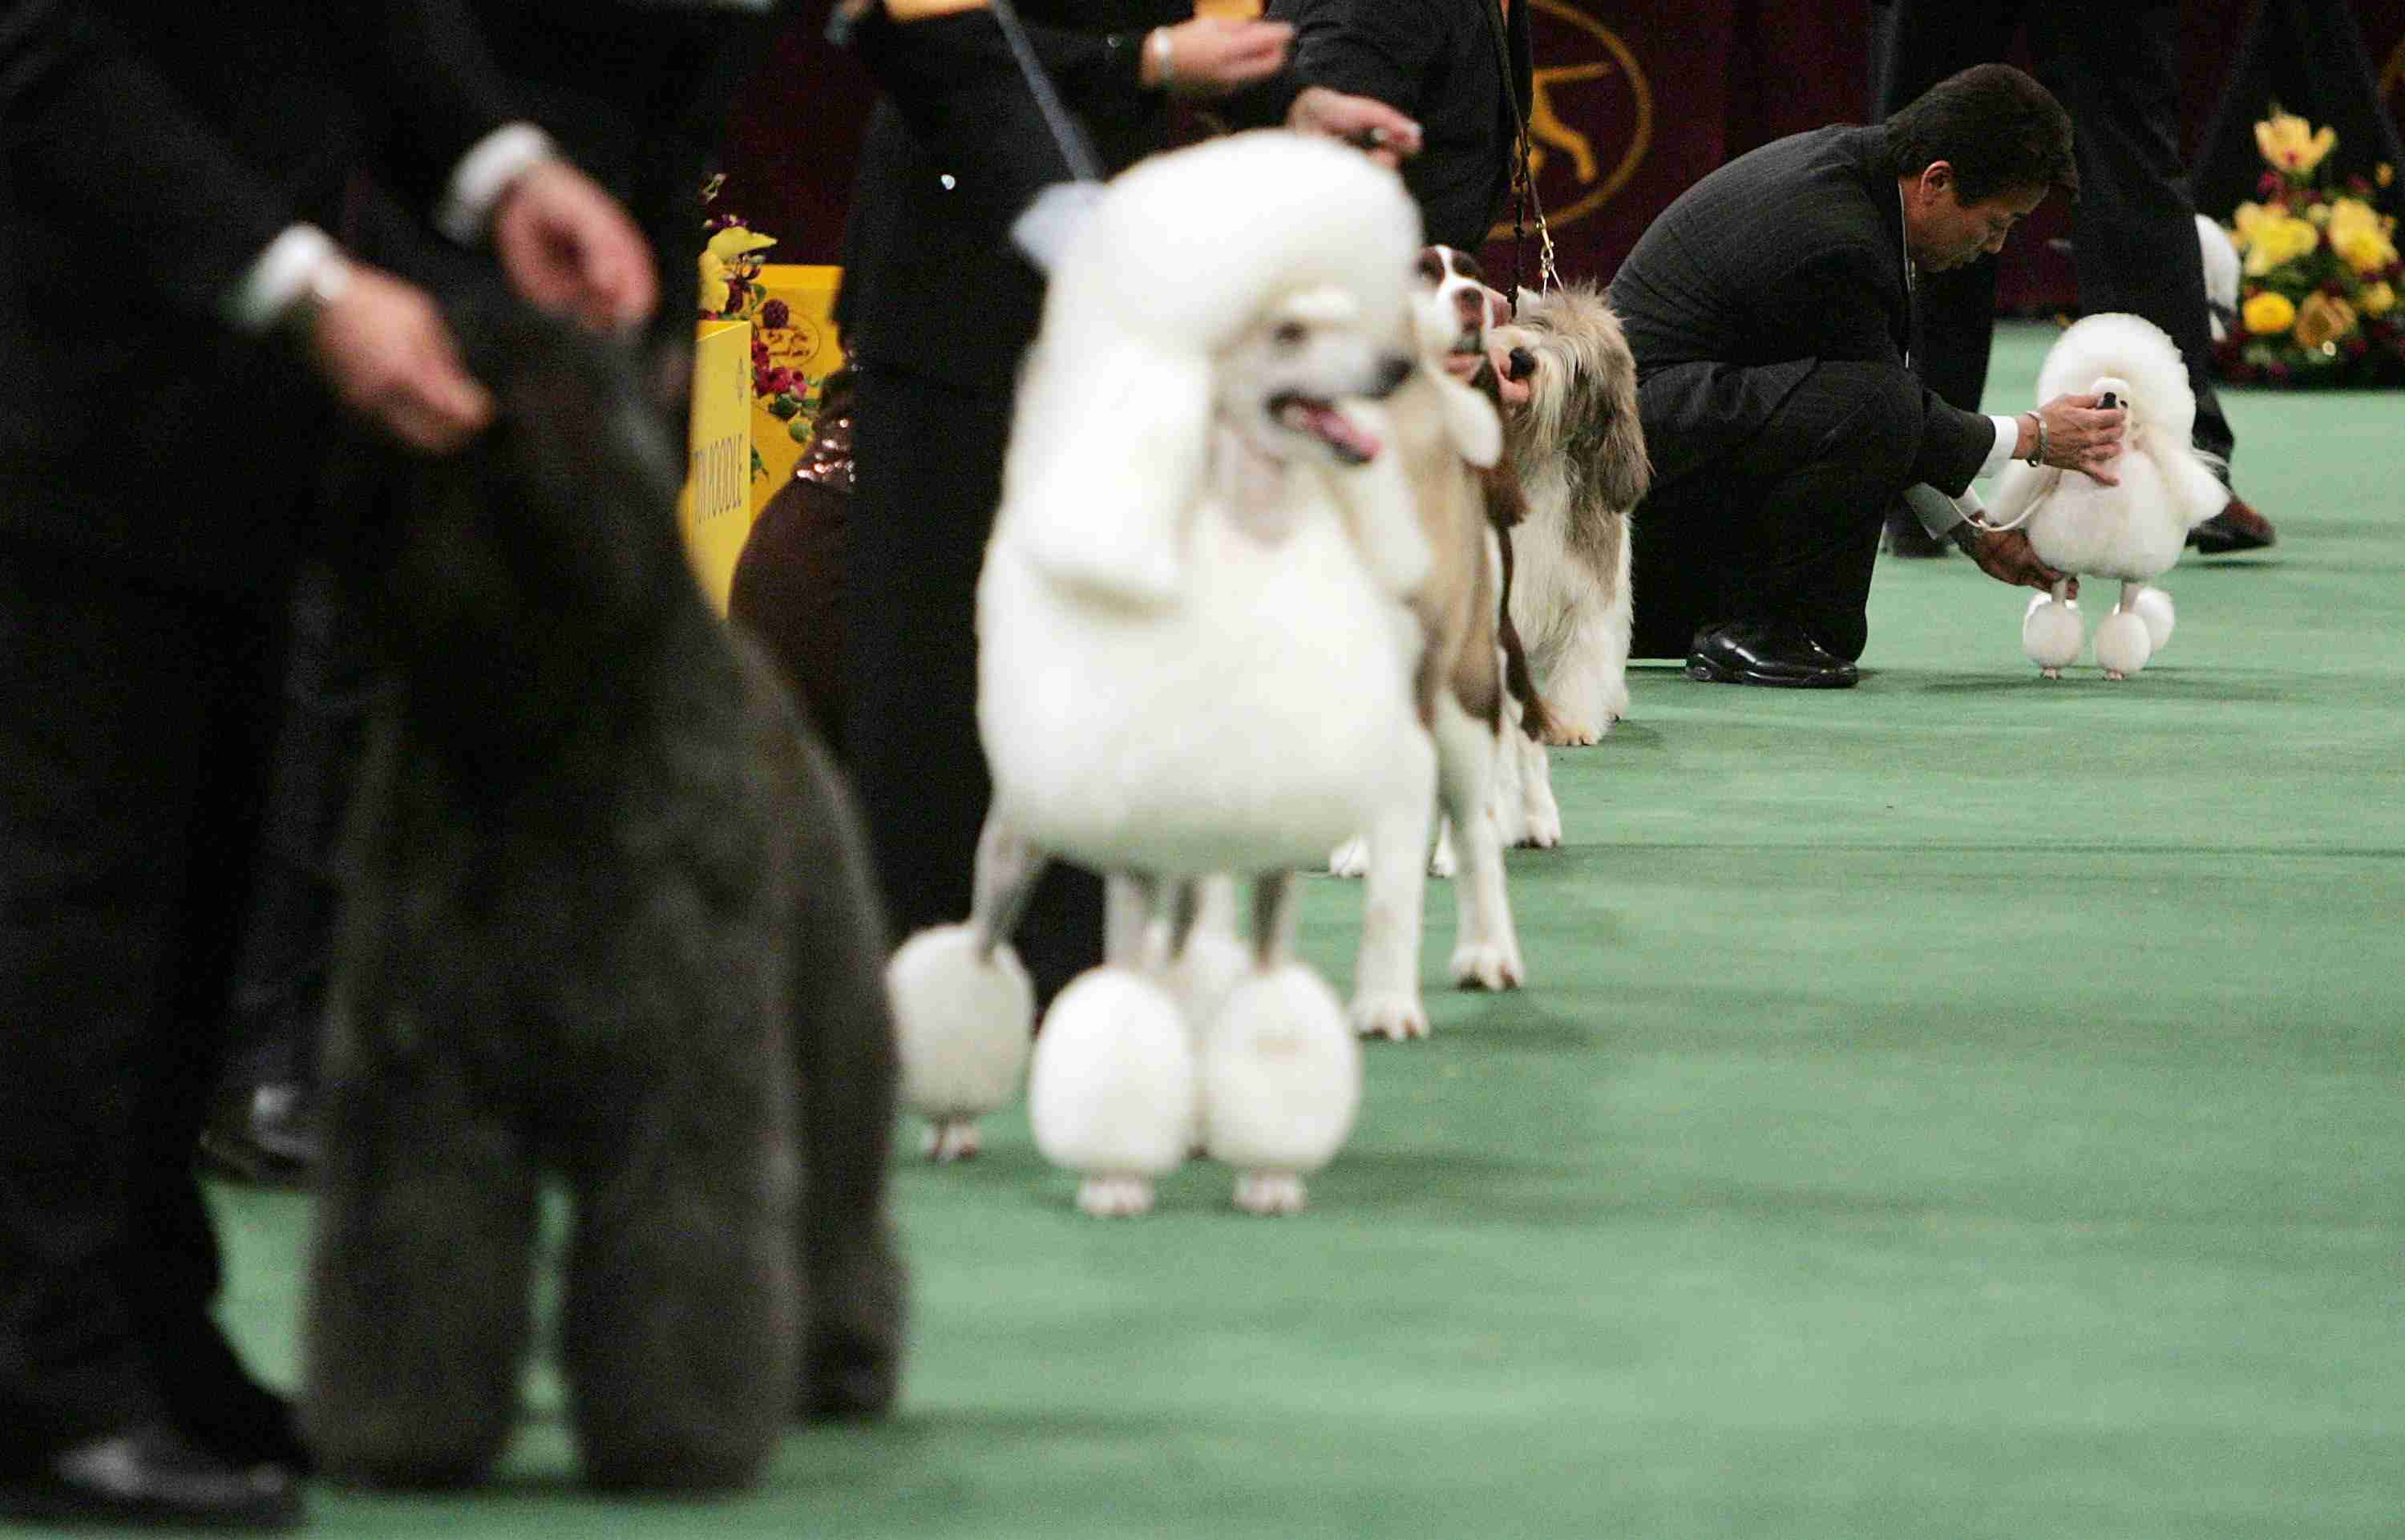 Westminster Dog Show Photo - Dogs Compete at the Westminster Kennel Club Dog Show